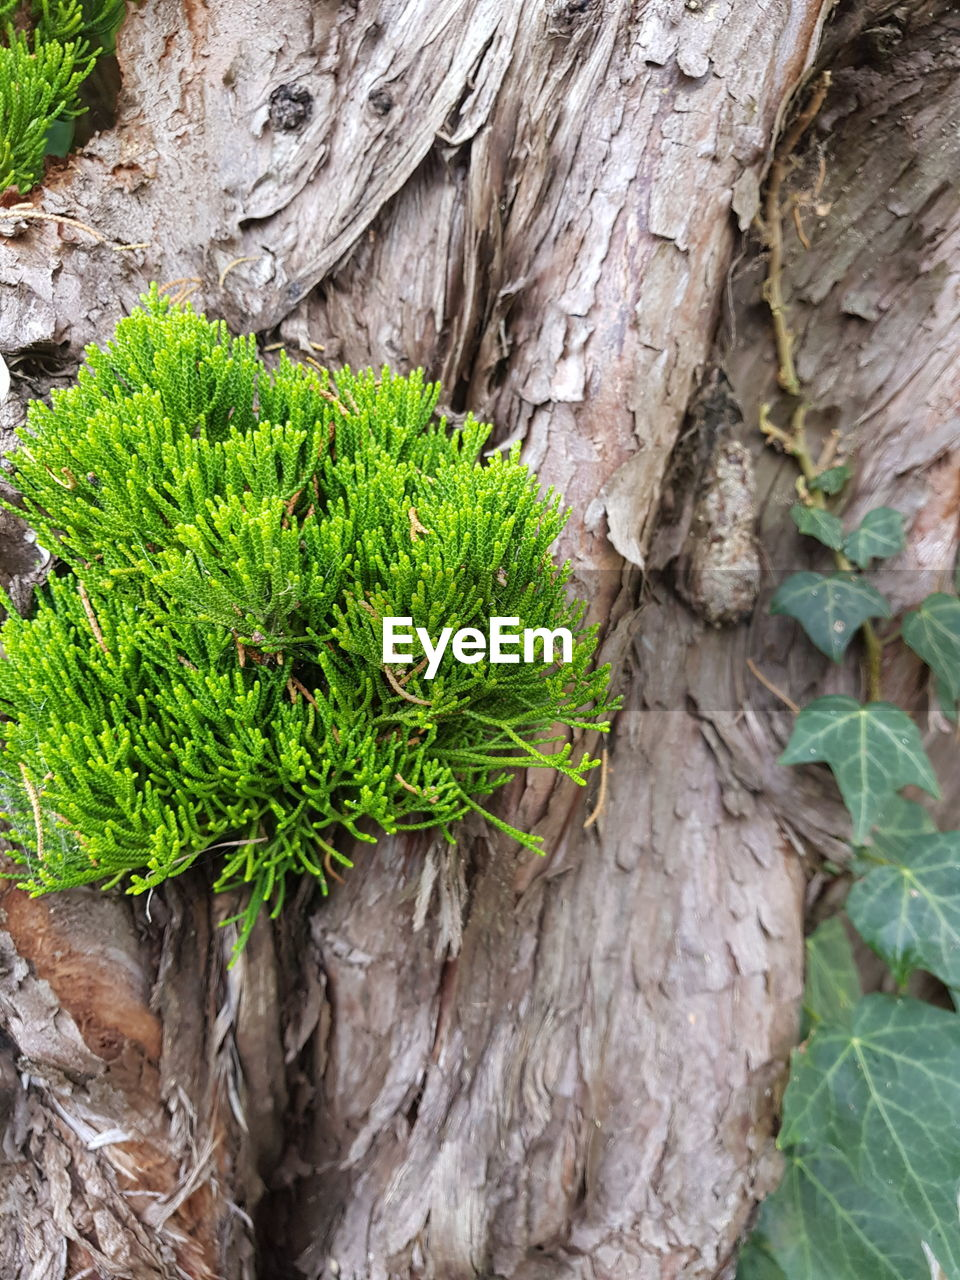 growth, plant, green color, tree trunk, nature, leaf, no people, day, outdoors, close-up, beauty in nature, tree, fragility, freshness